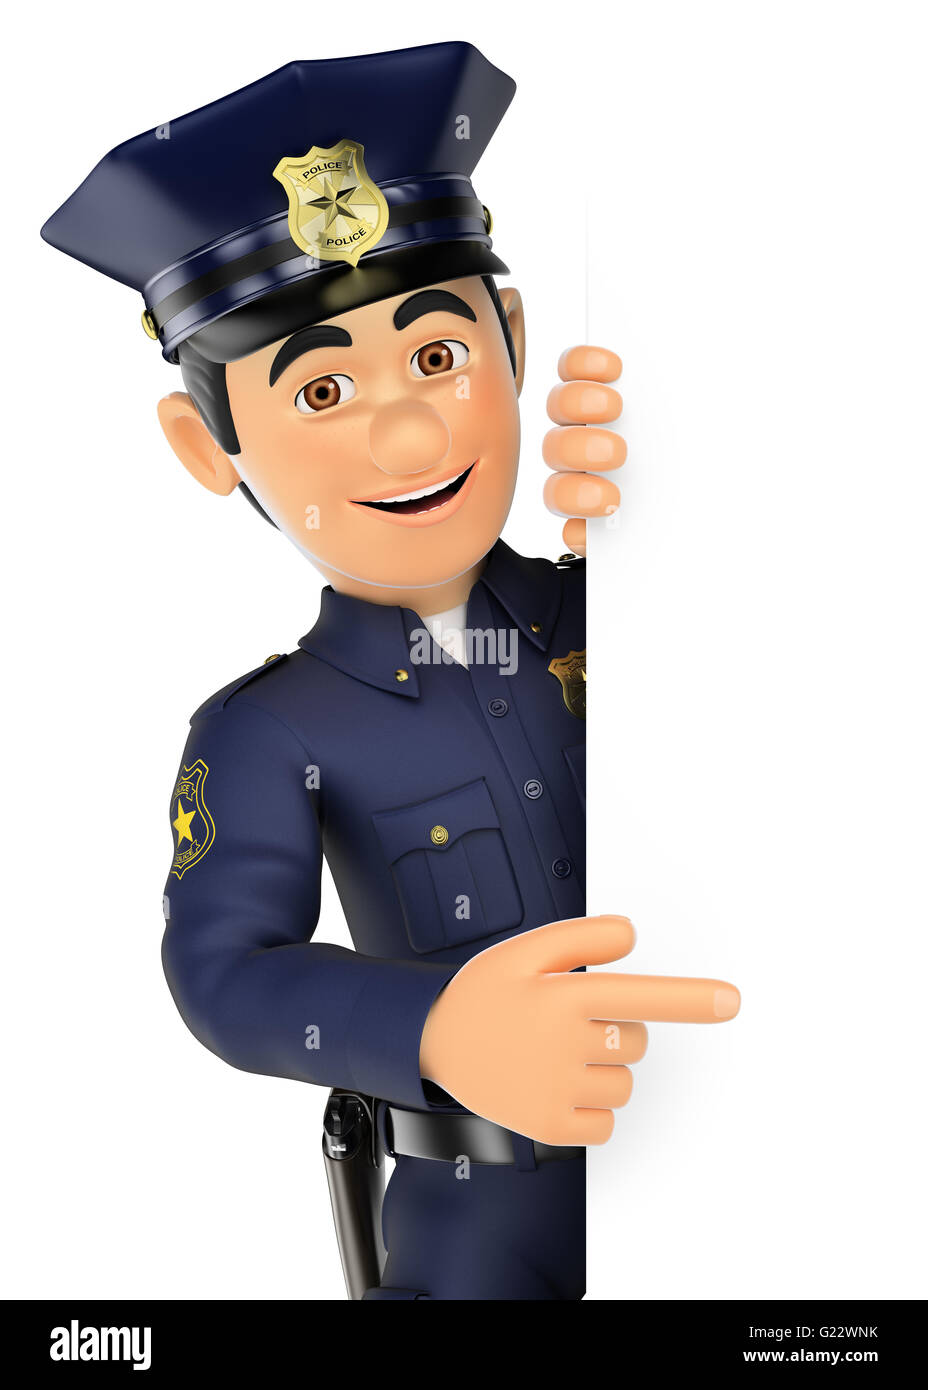 police officer pointing finger stock photos u0026 police officer